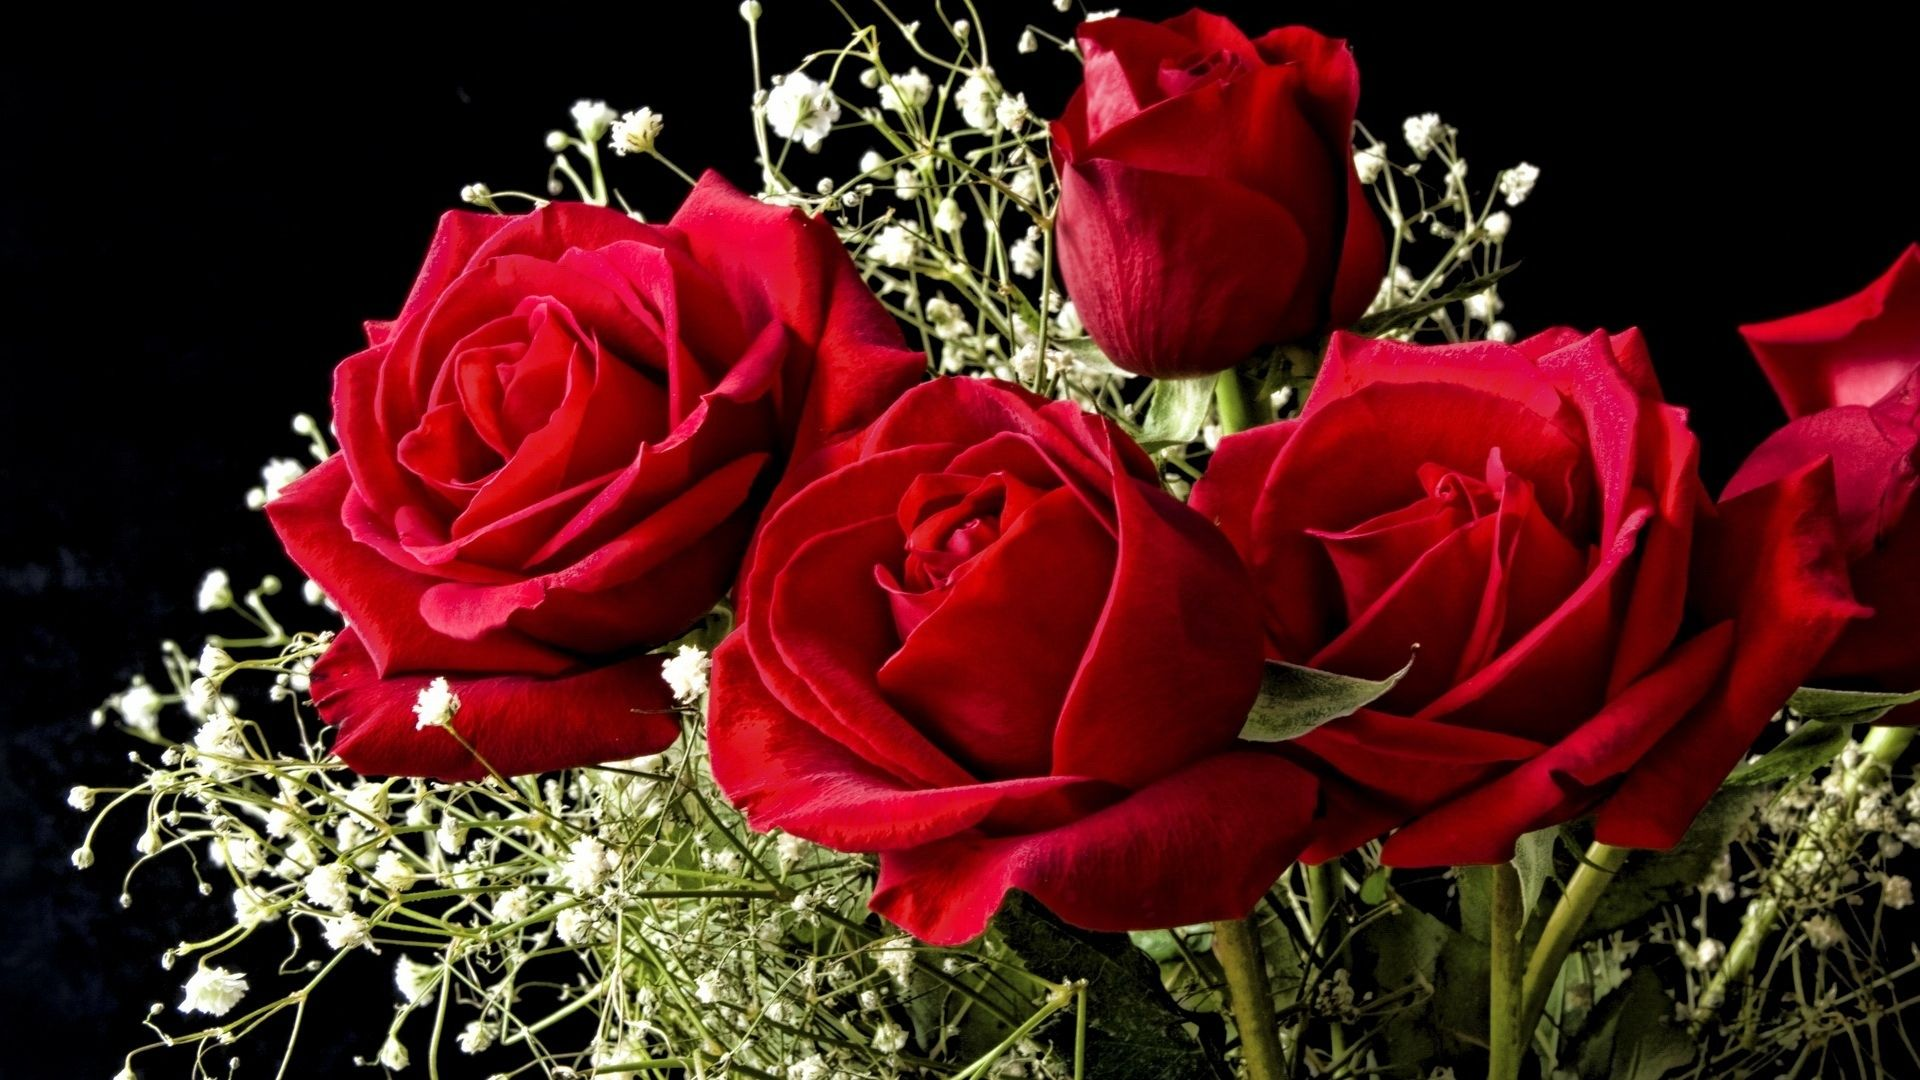 Rose Flower Wallpapers Top Free Rose Flower Backgrounds Wallpaperaccess